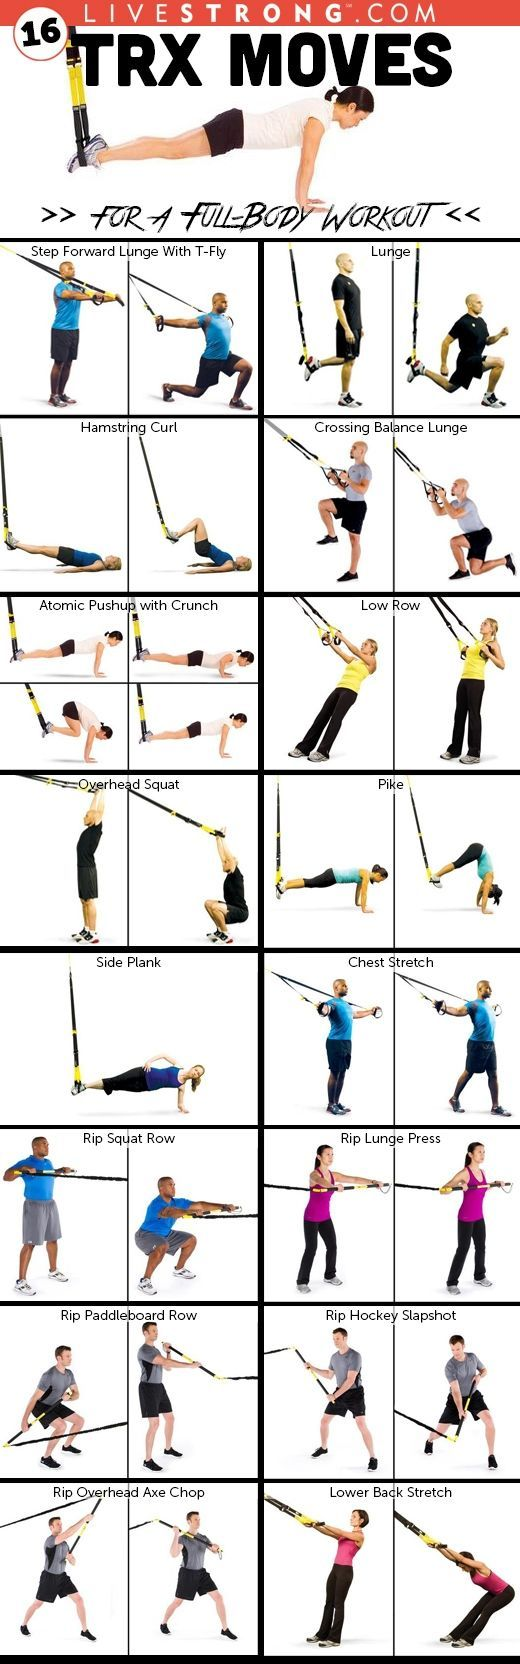 16 Trx Exercises For A Full Body Workout Livestrong Com Trx Workouts Trx Training Fitness Body